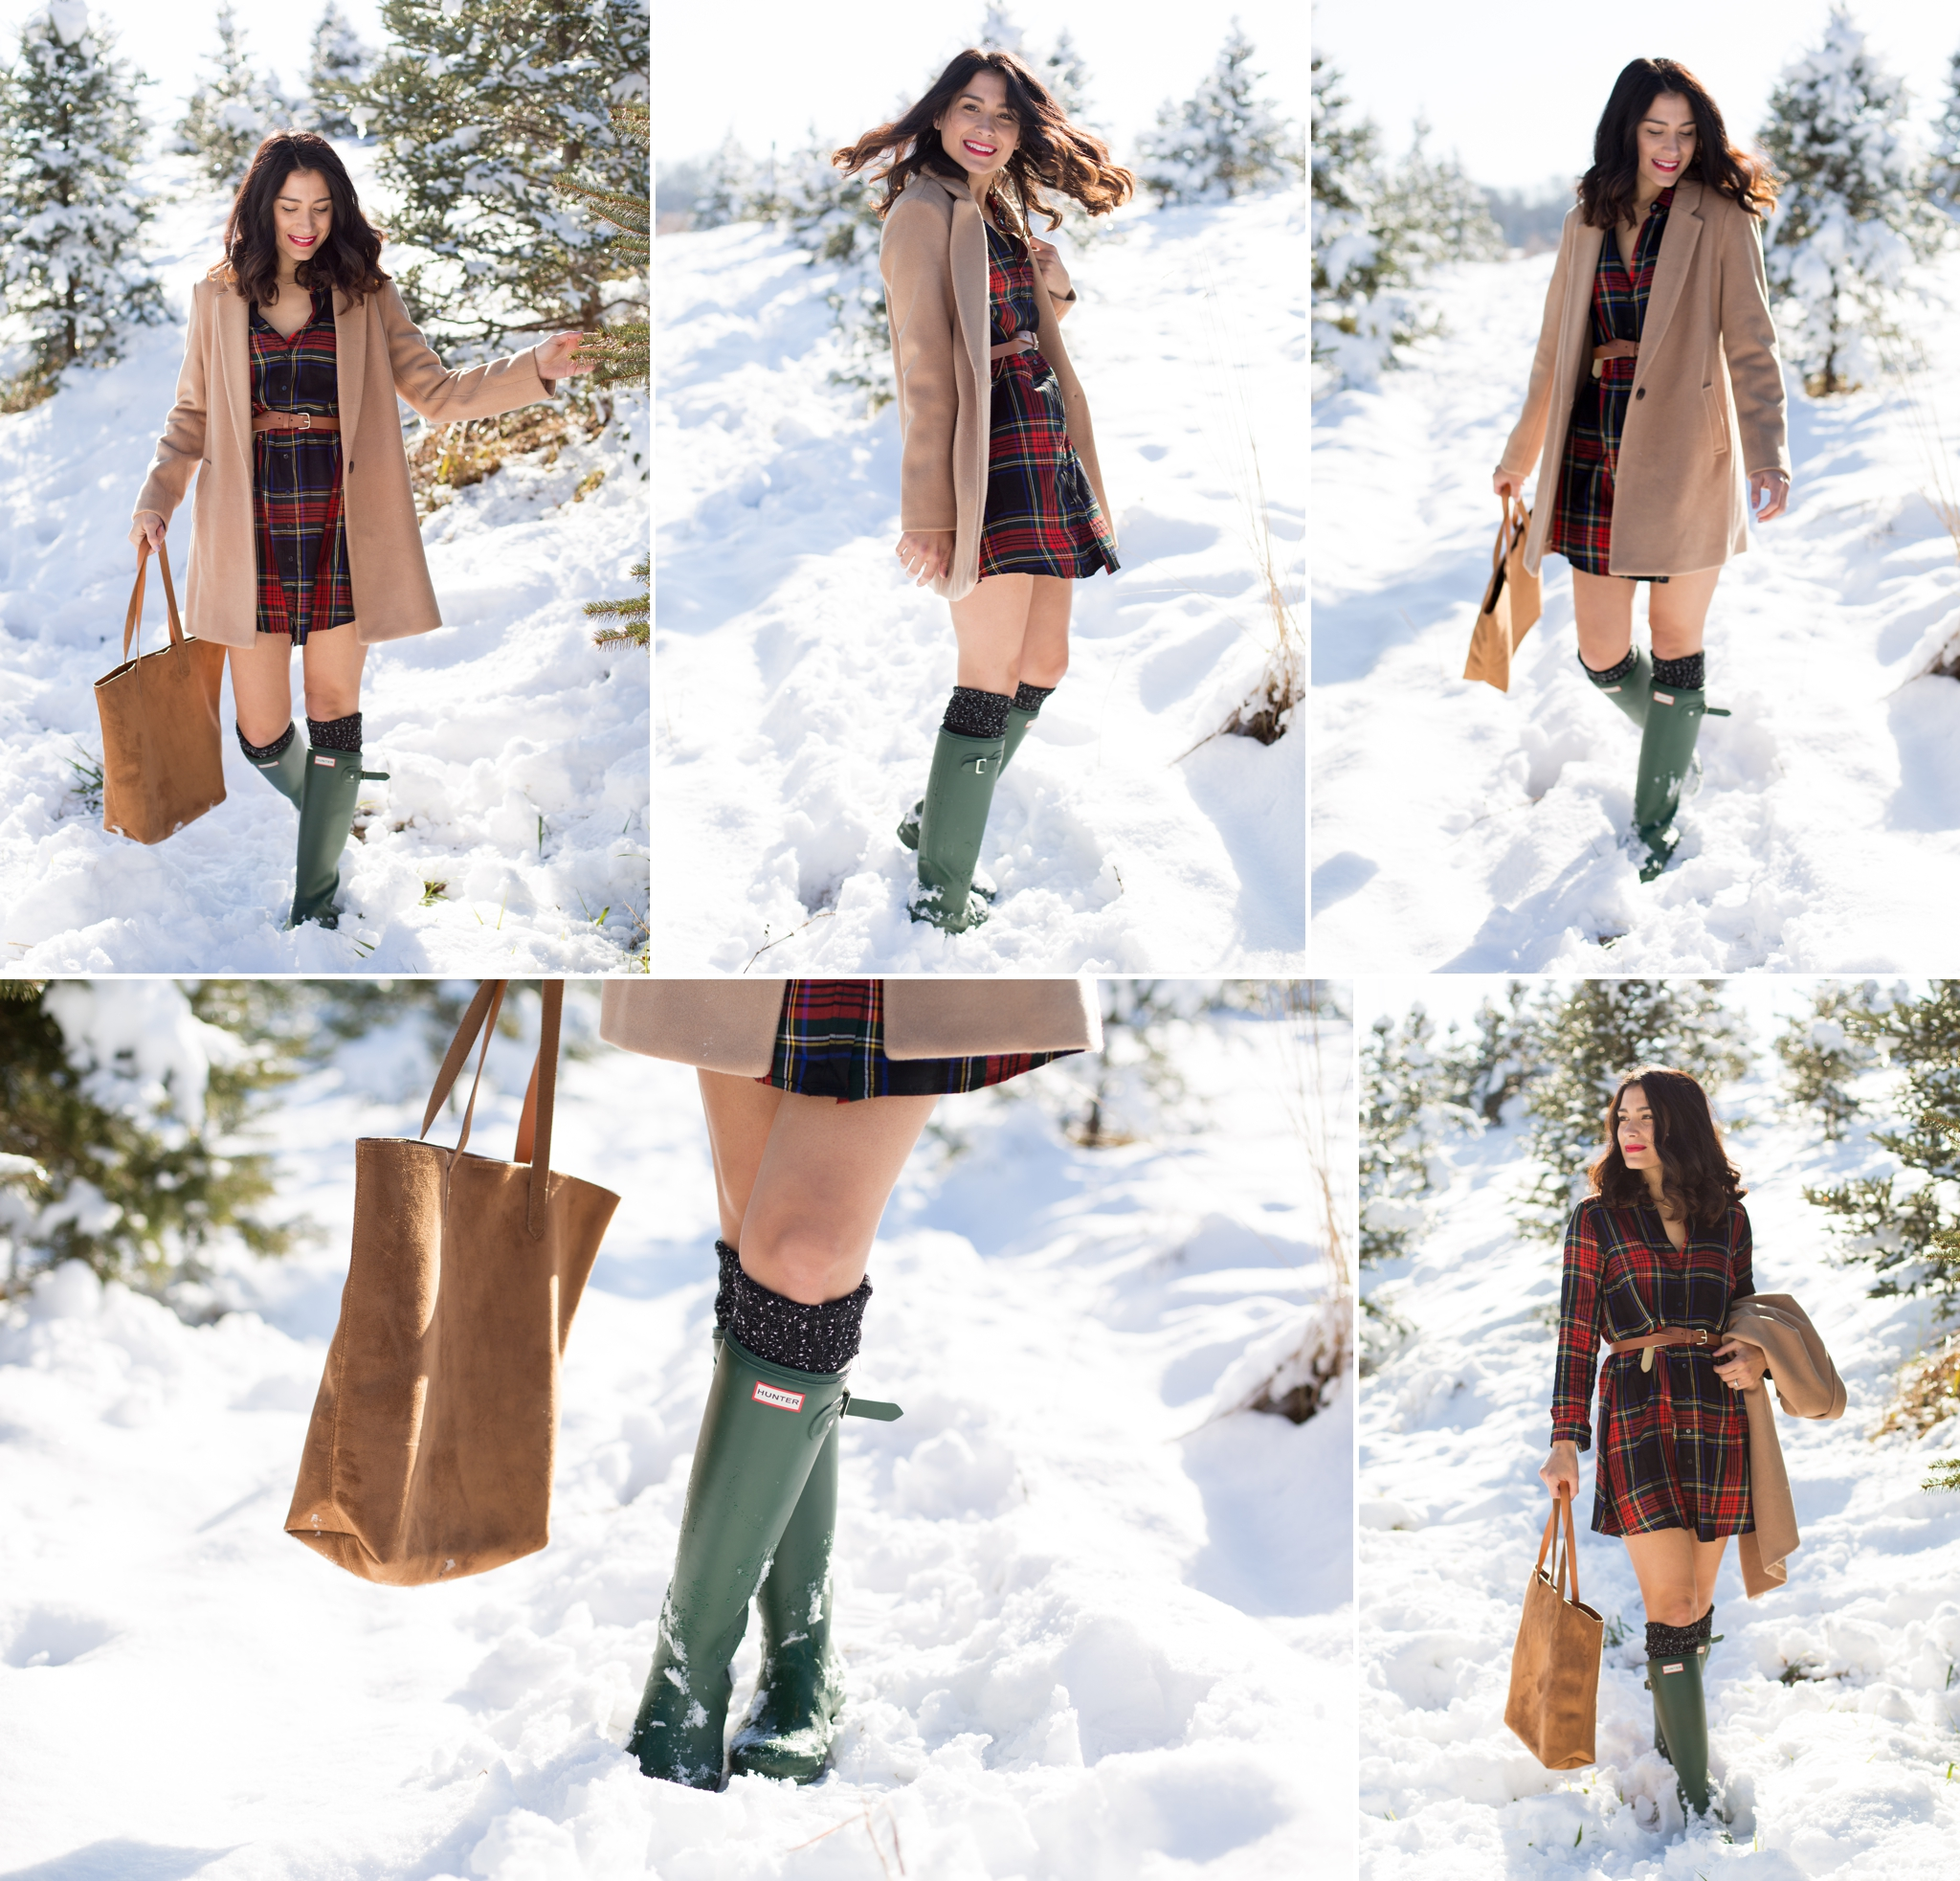 Snowy photos, winter wonderland, blog photography, pictures in the snow, flannel dress, green hunter boots